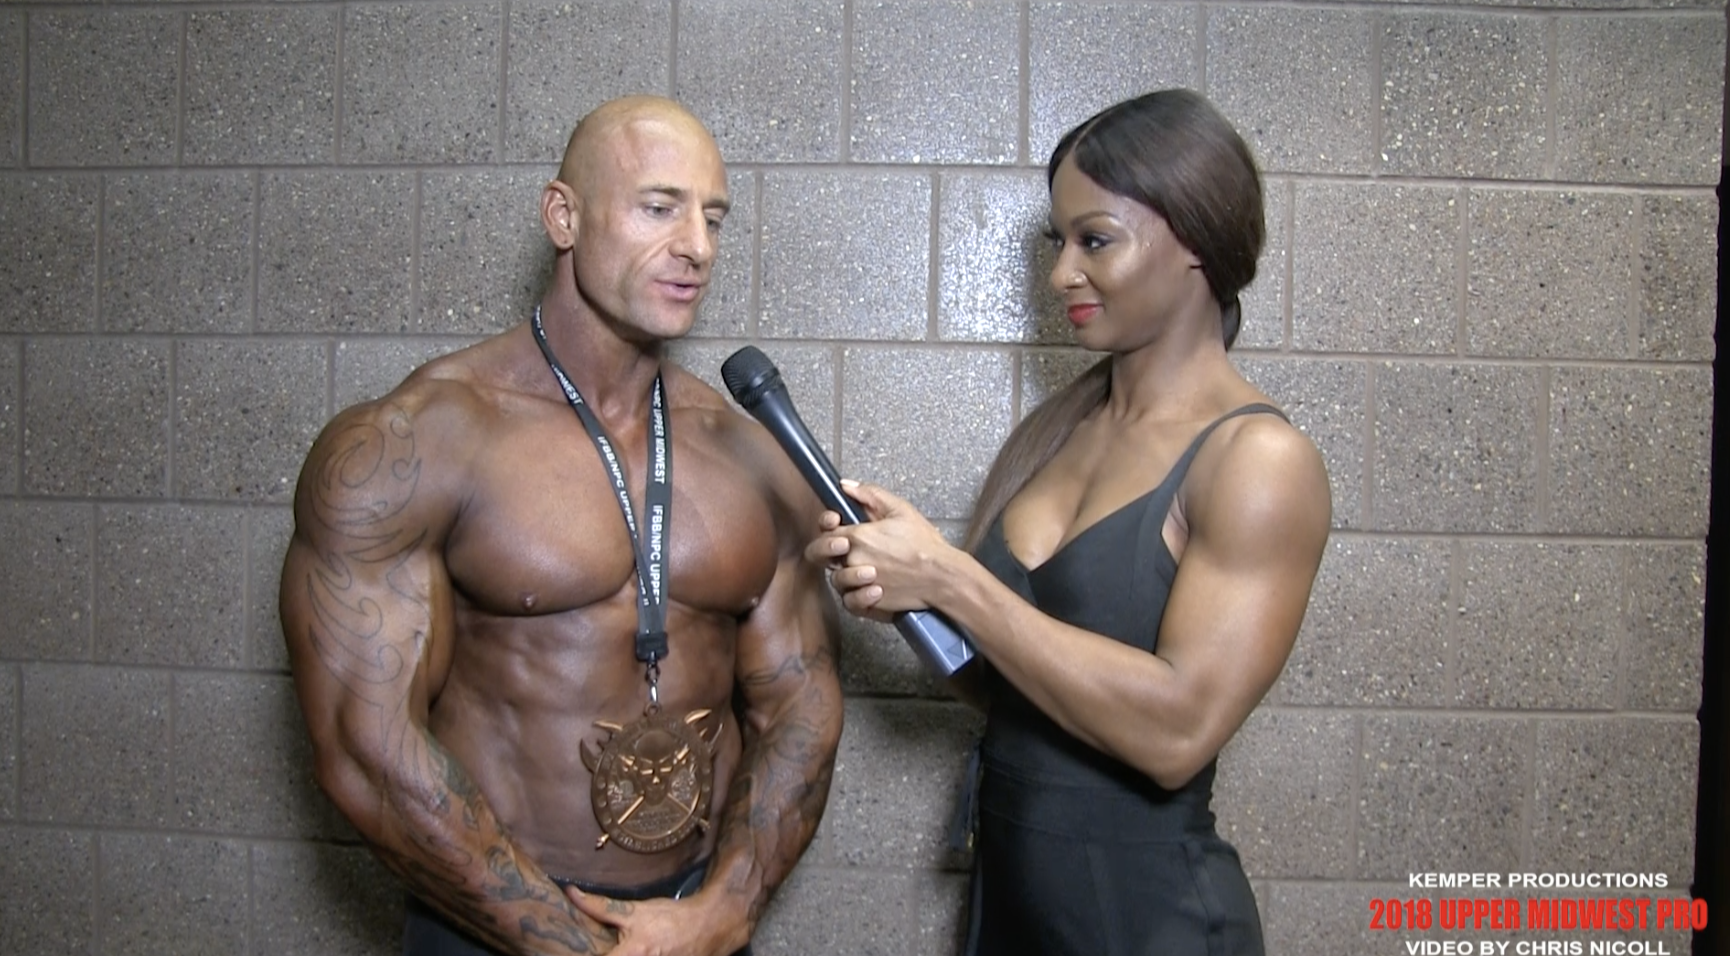 2018 IFBB Upper Midwest Pro Men's Classic Physique 3rd Place Winner Russ Allen Interviewed By IFBB Pro Candice Lewis Carter.